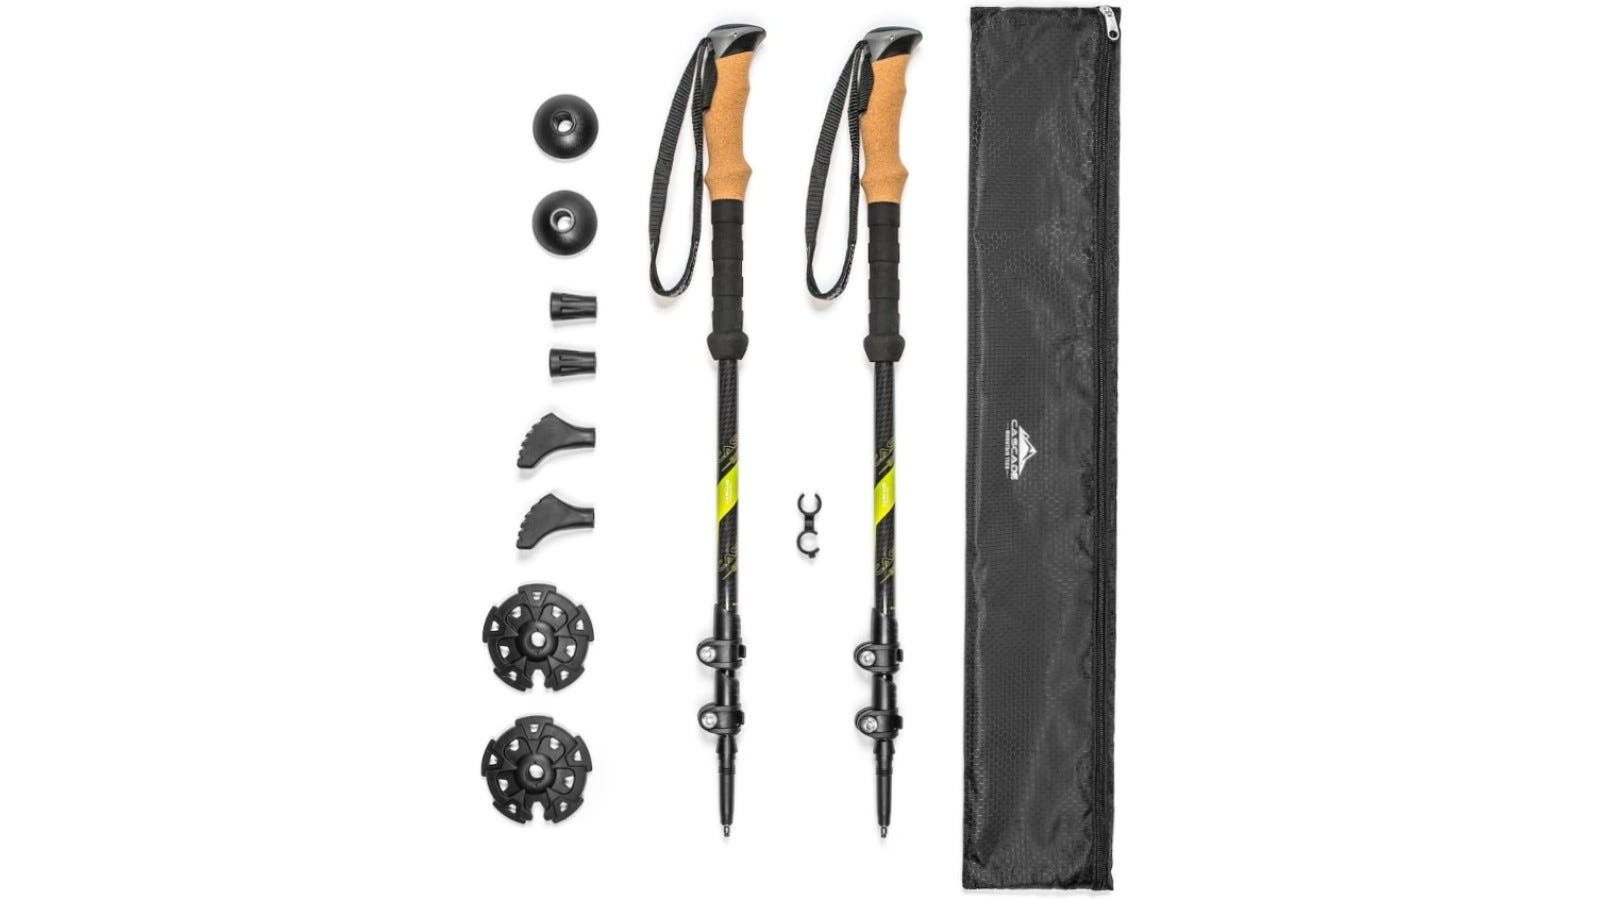 These durable hiking poles are made of carbon fiber material